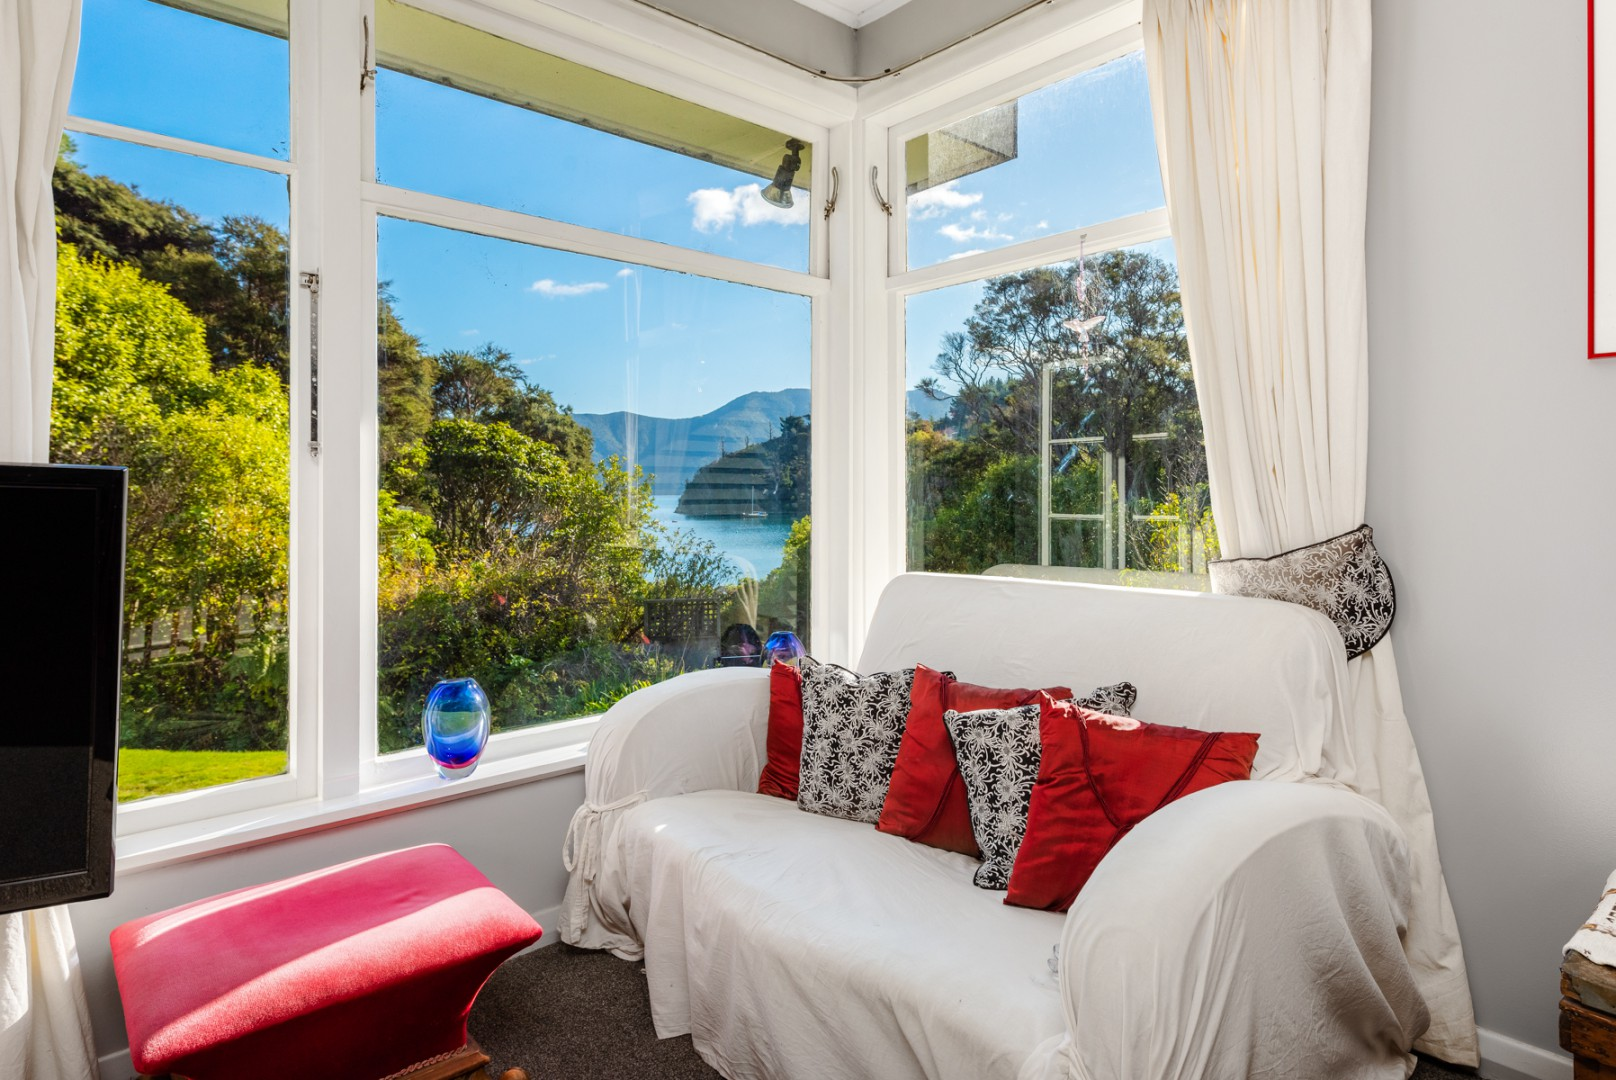 1100 Elie Bay Road - Crail Bay, Marlborough Sounds #16 -- listing/11168/p-v2.jpeg